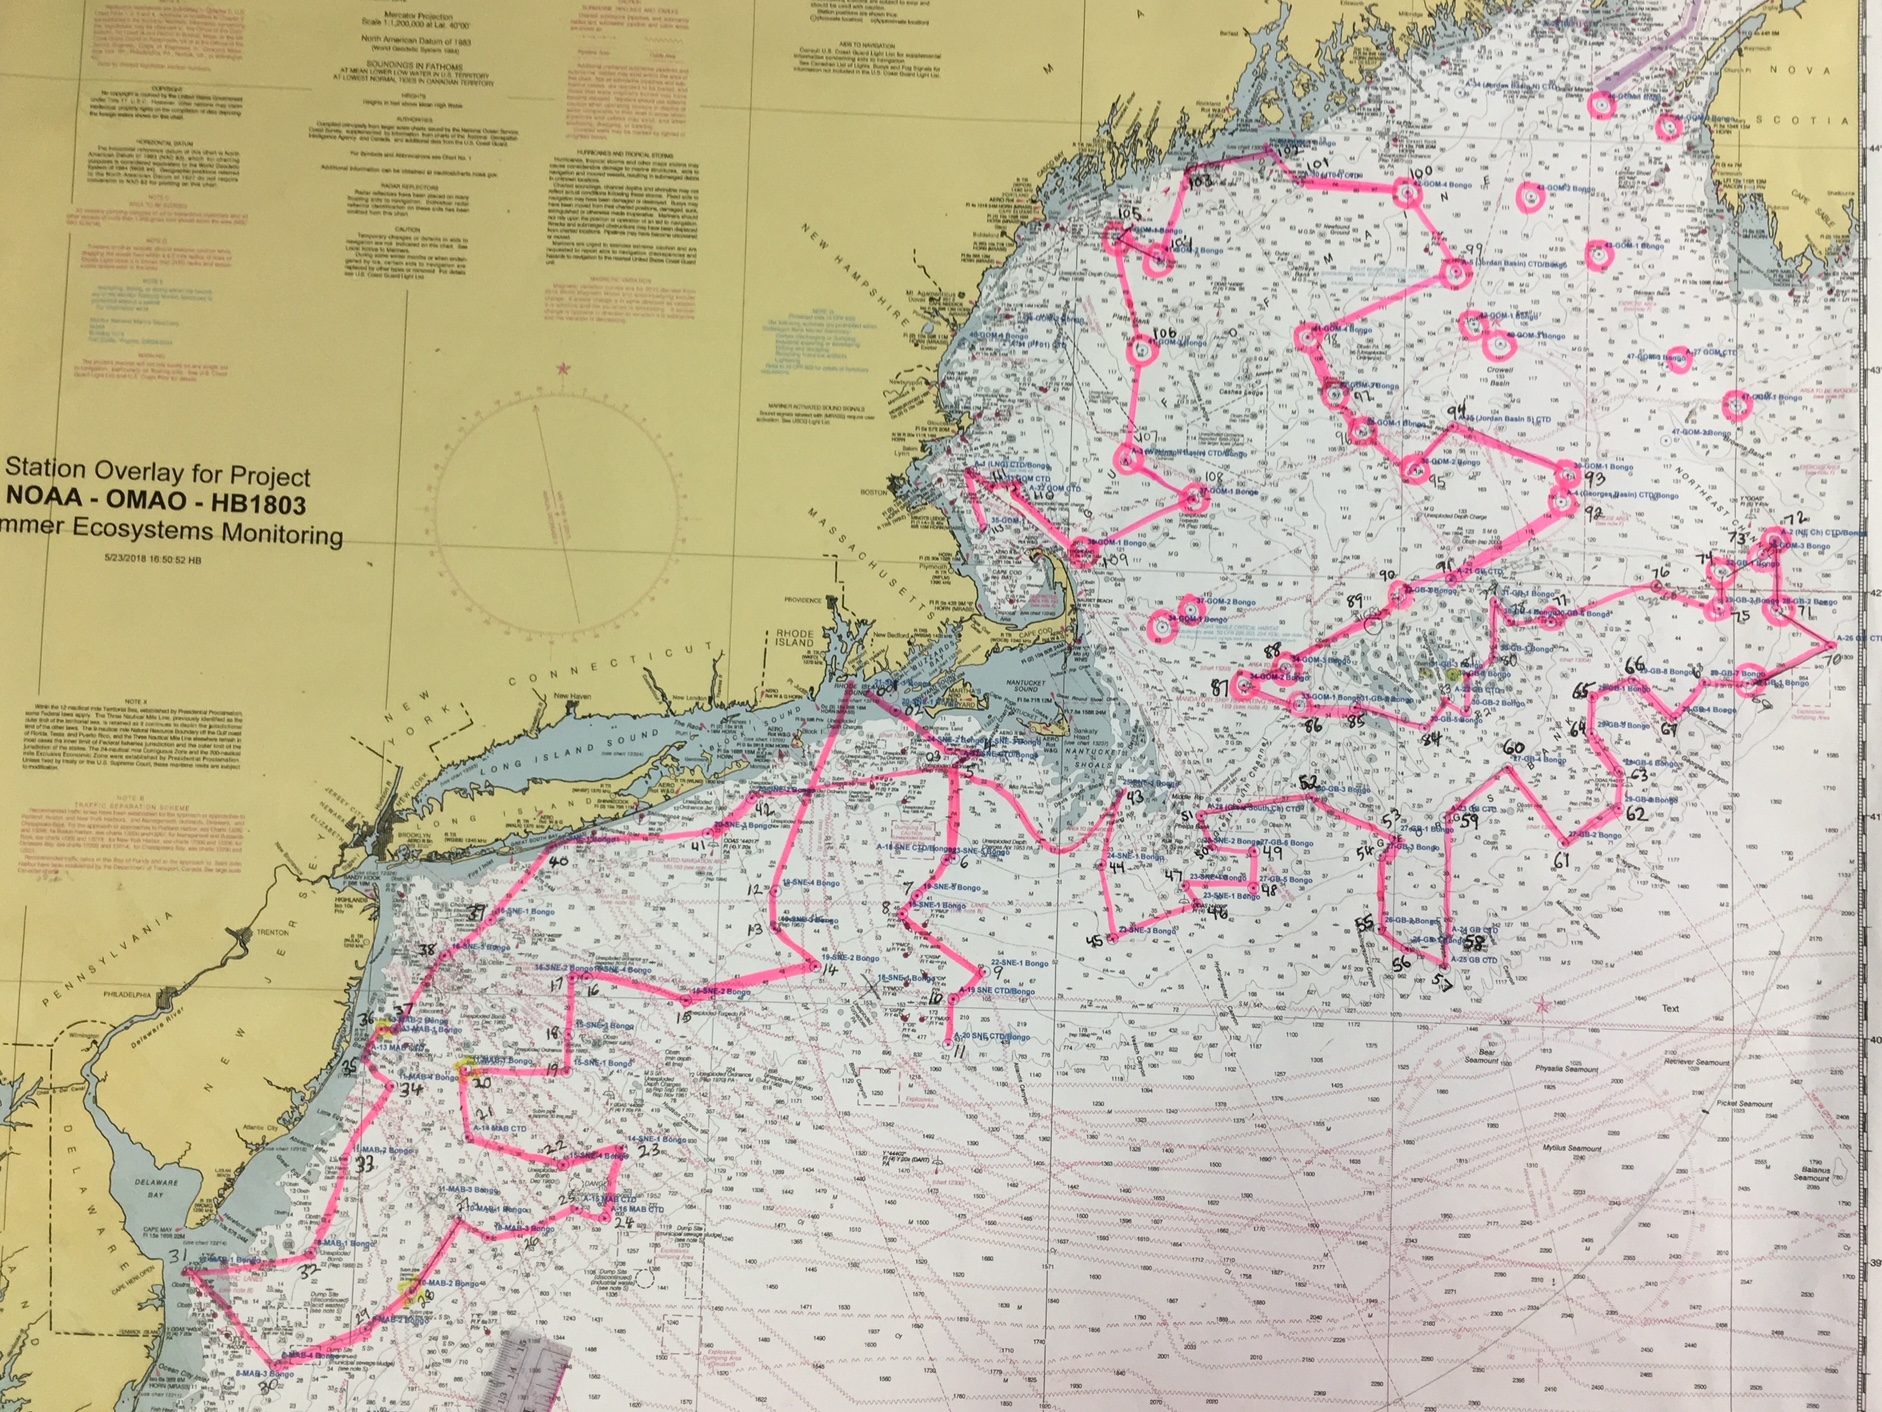 Route map shows path of cruise